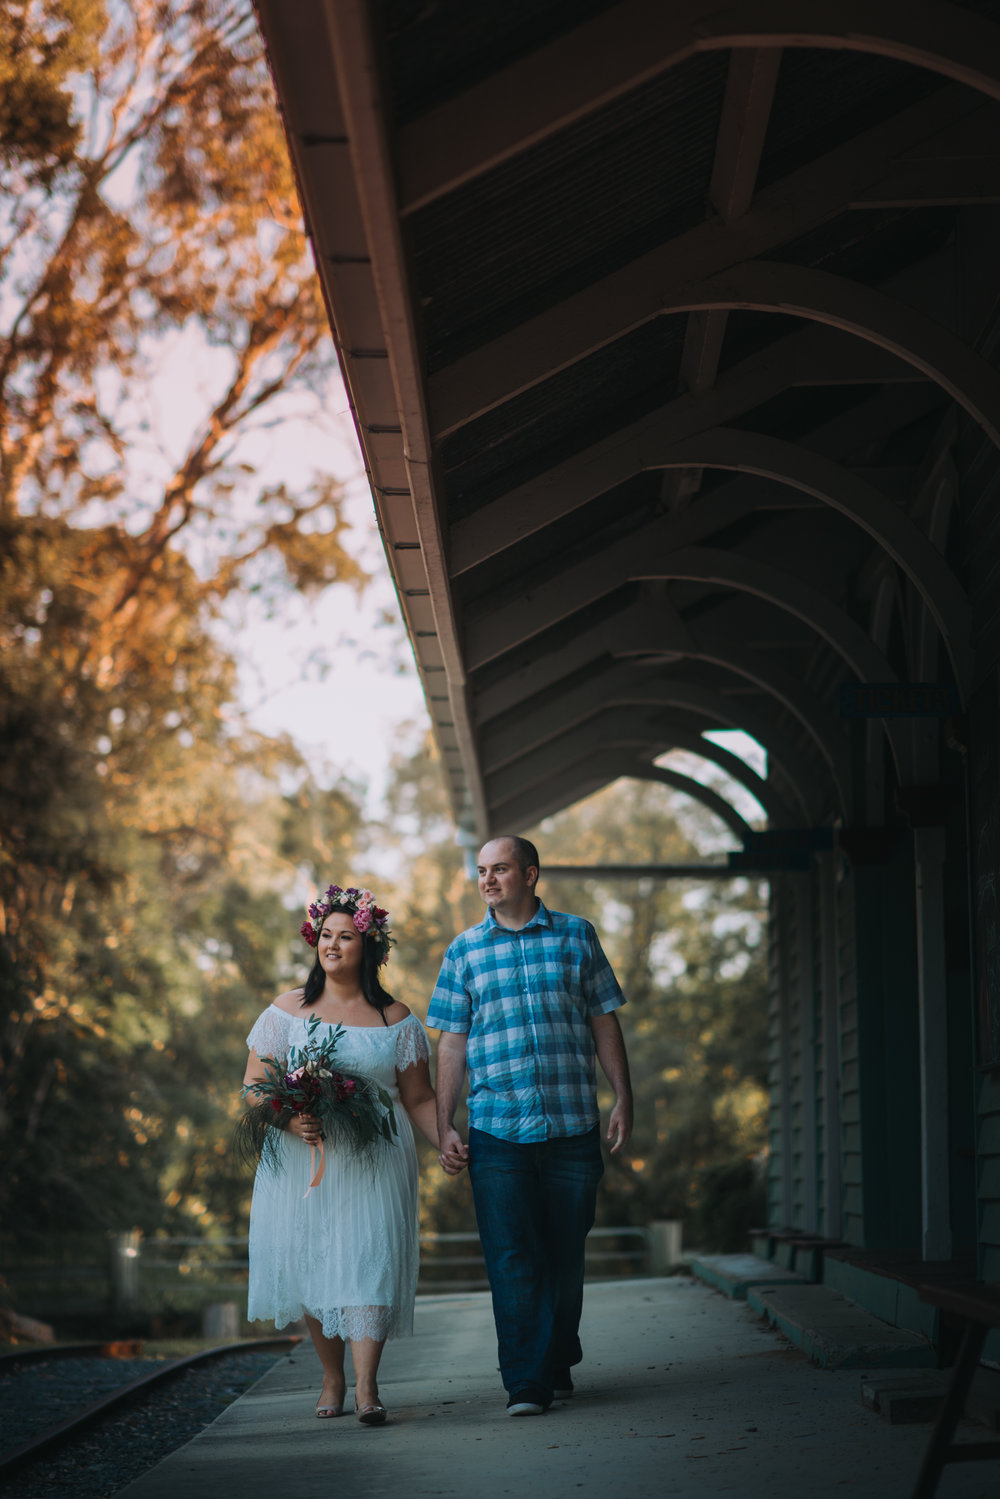 Engagement Photoshoot Inspiration Brisbane Wedding Photography Confetti Bright Flowers Bouquet Floral Crown Old Petrie Town Train Station Lovelenscapes Photography www.lovelenscapes.com